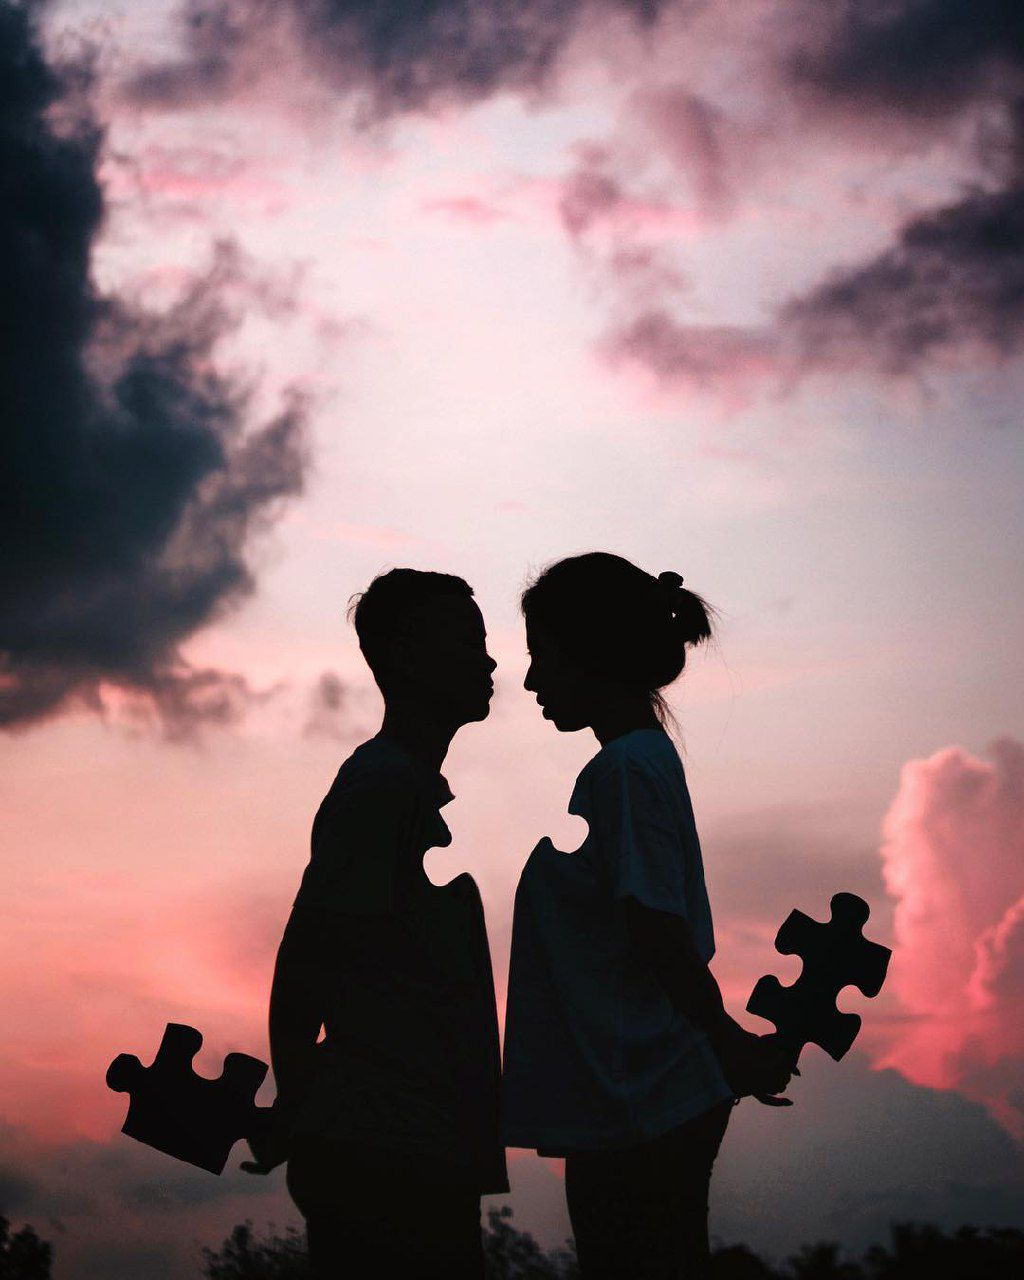 romantic couple images free download in hd